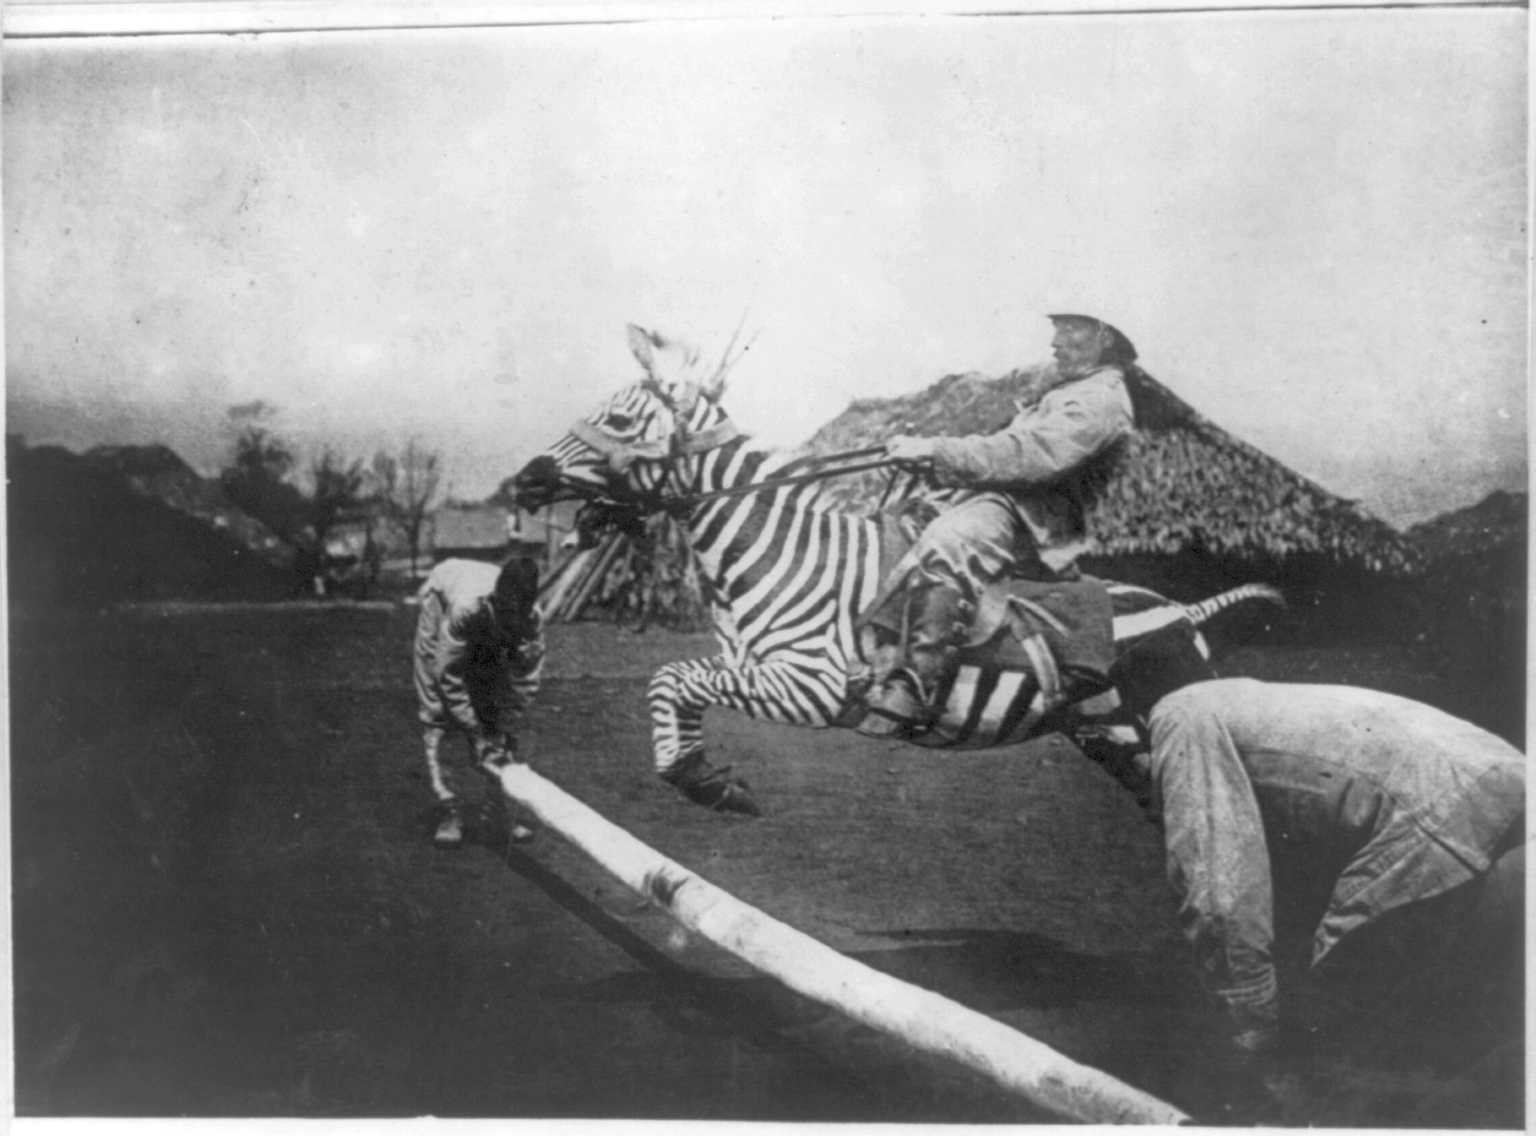 File:Zebra-tame-jumping.jpg - Wikipedia, the free encyclopedia